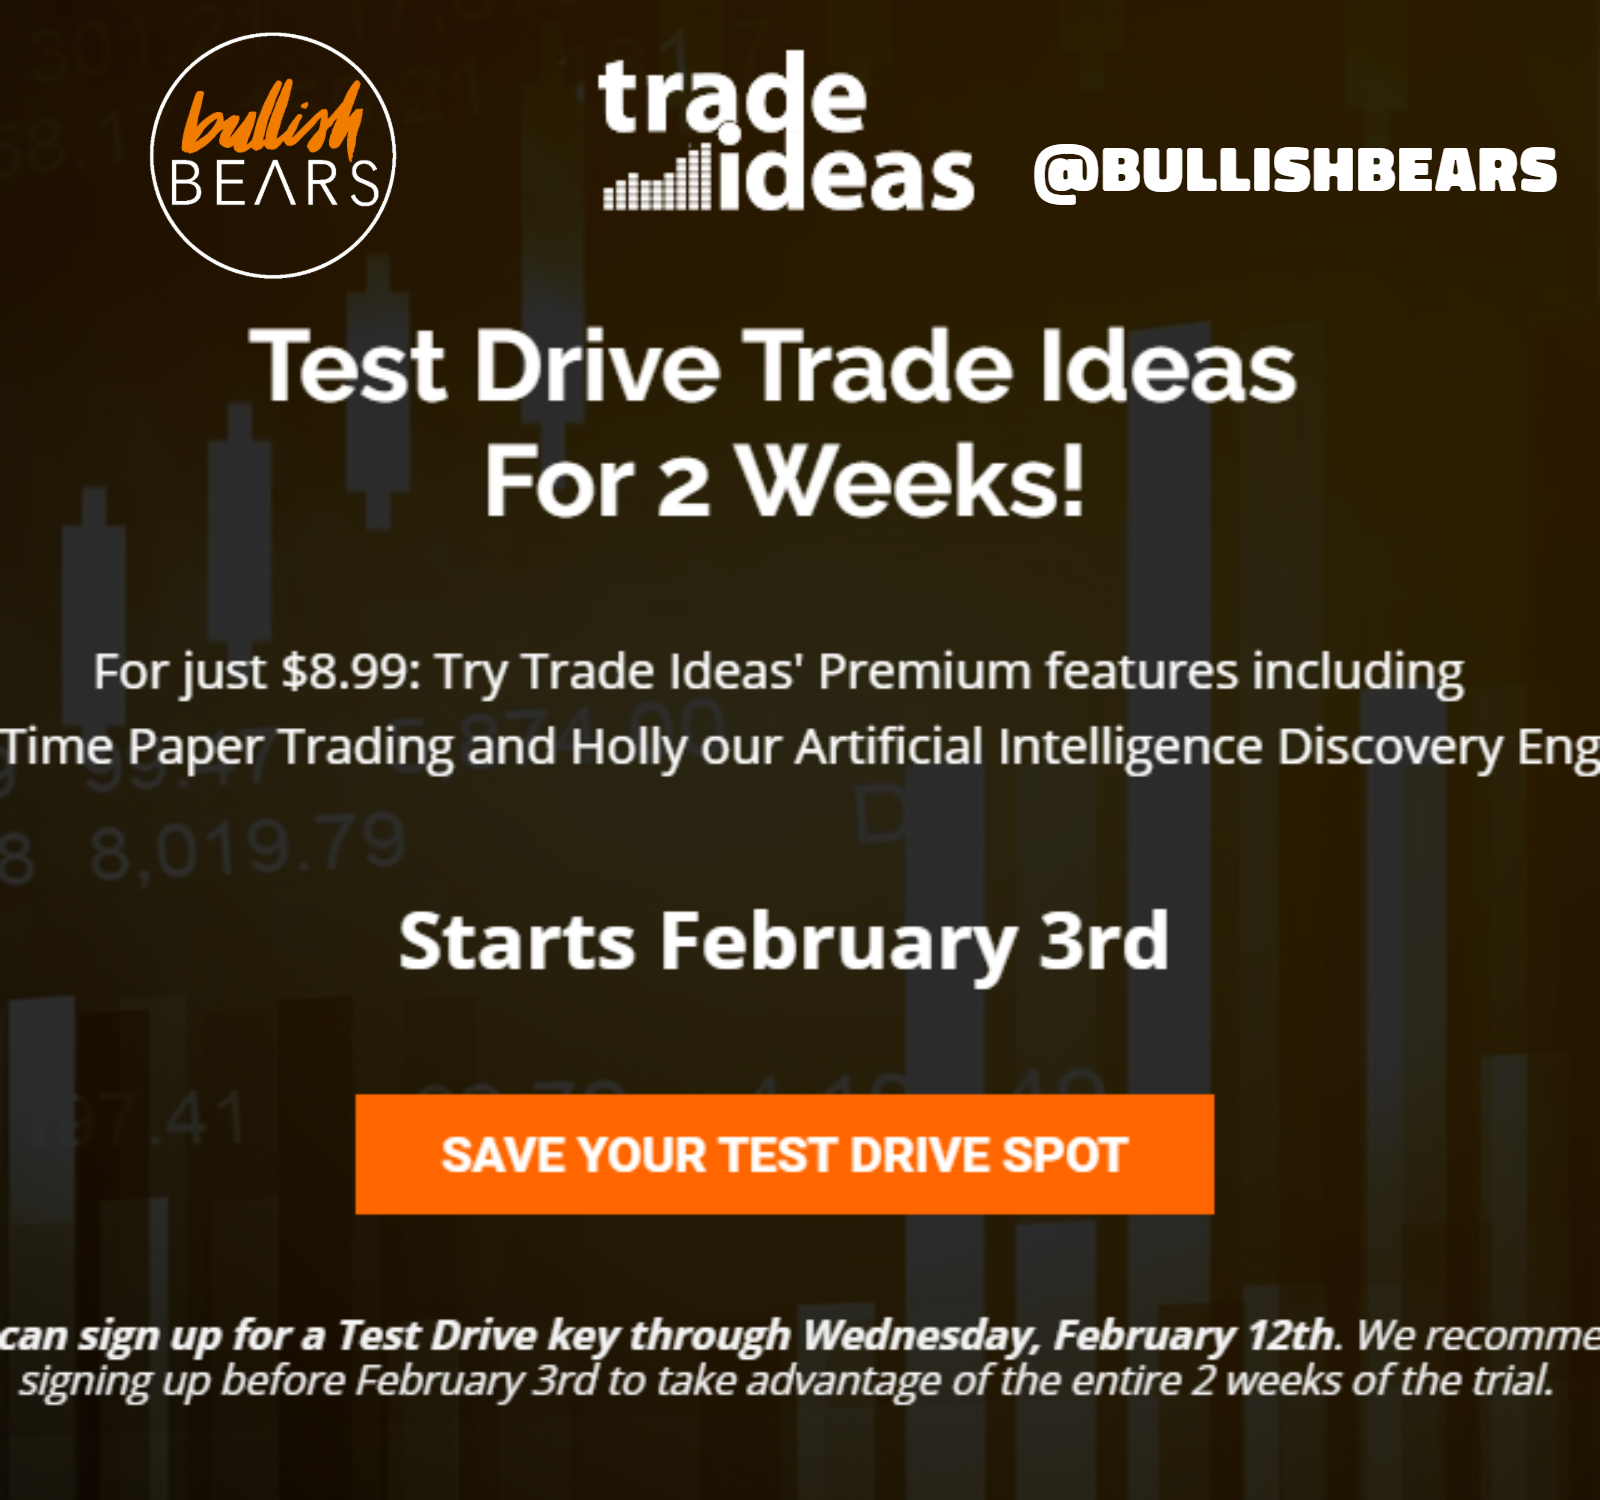 Get Tradeideas Fully Unlocked And Test It For Yourself For 9 Bucks It S Still One Of The Kings Of Stockscanners Out Th In 2020 Stock Market Driving Test Stock Picks